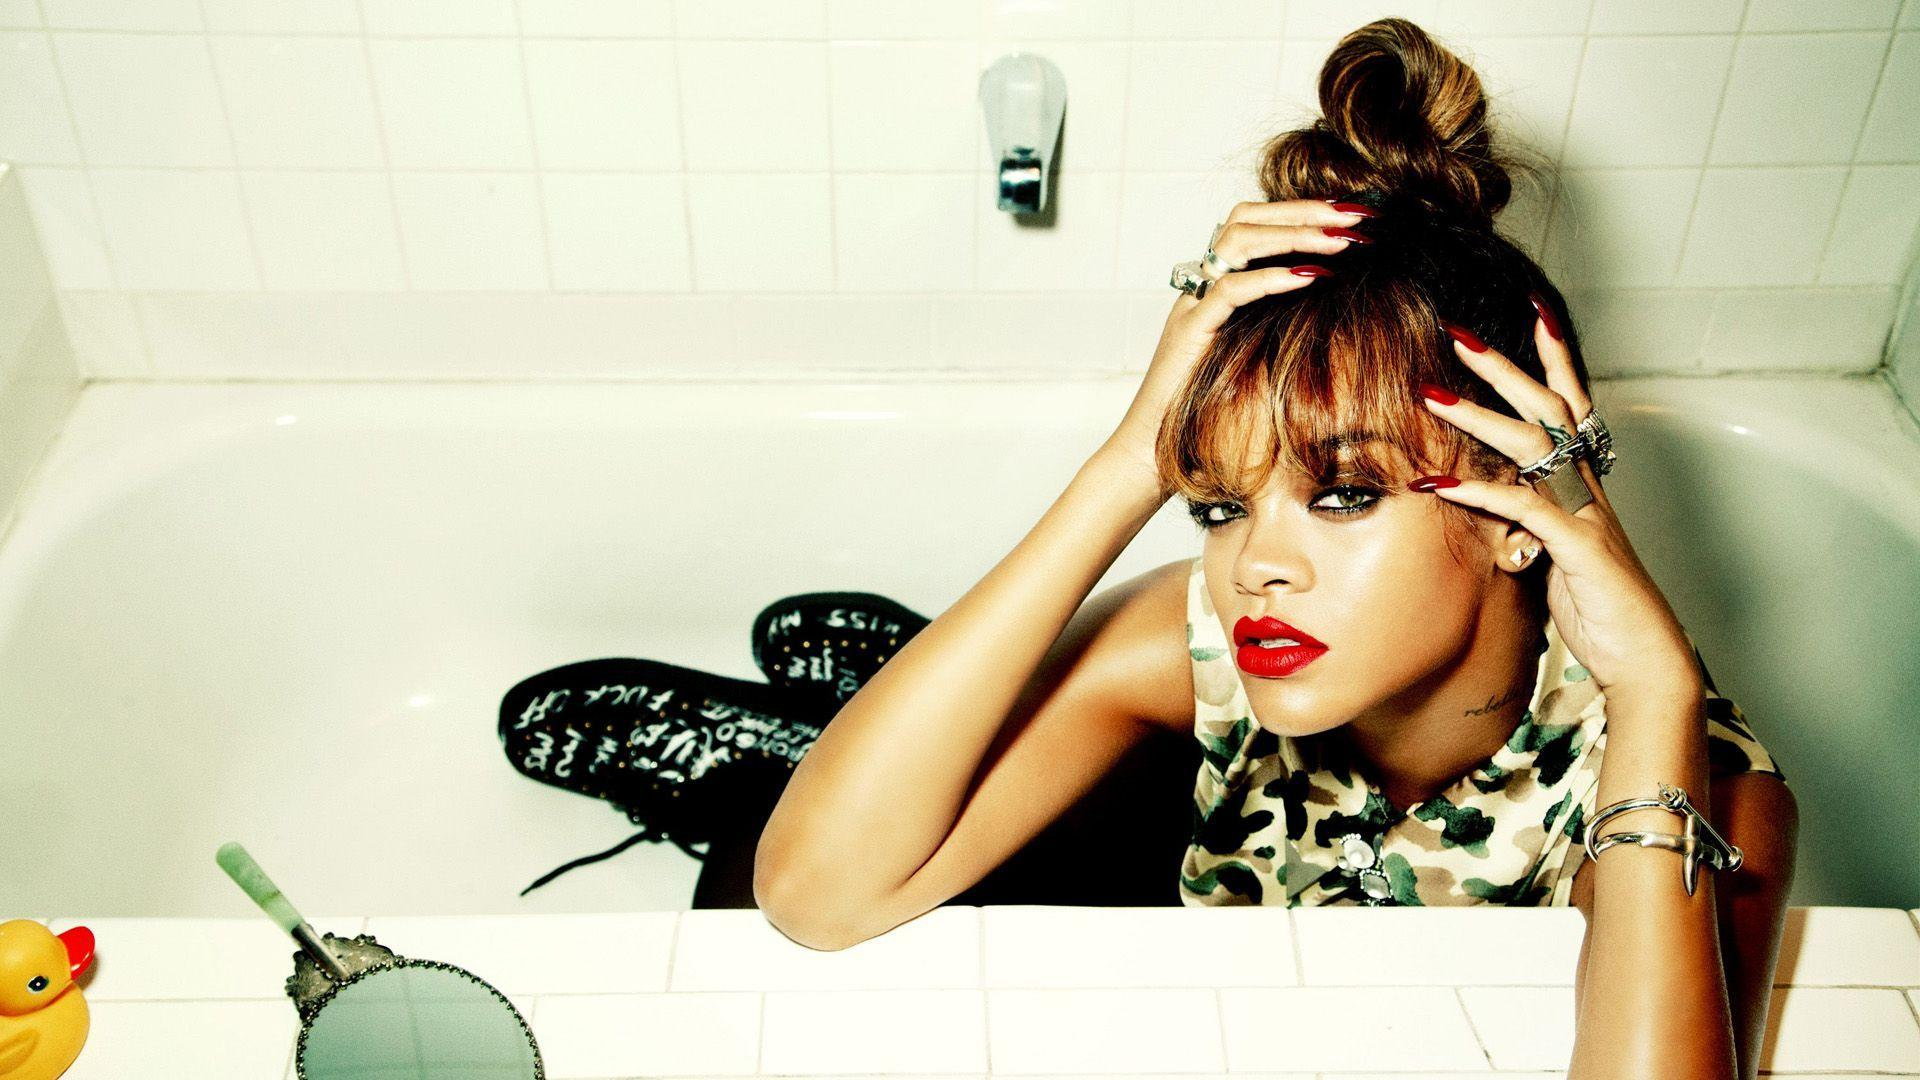 rihanna wallpaper hq wallpaper - photo #41